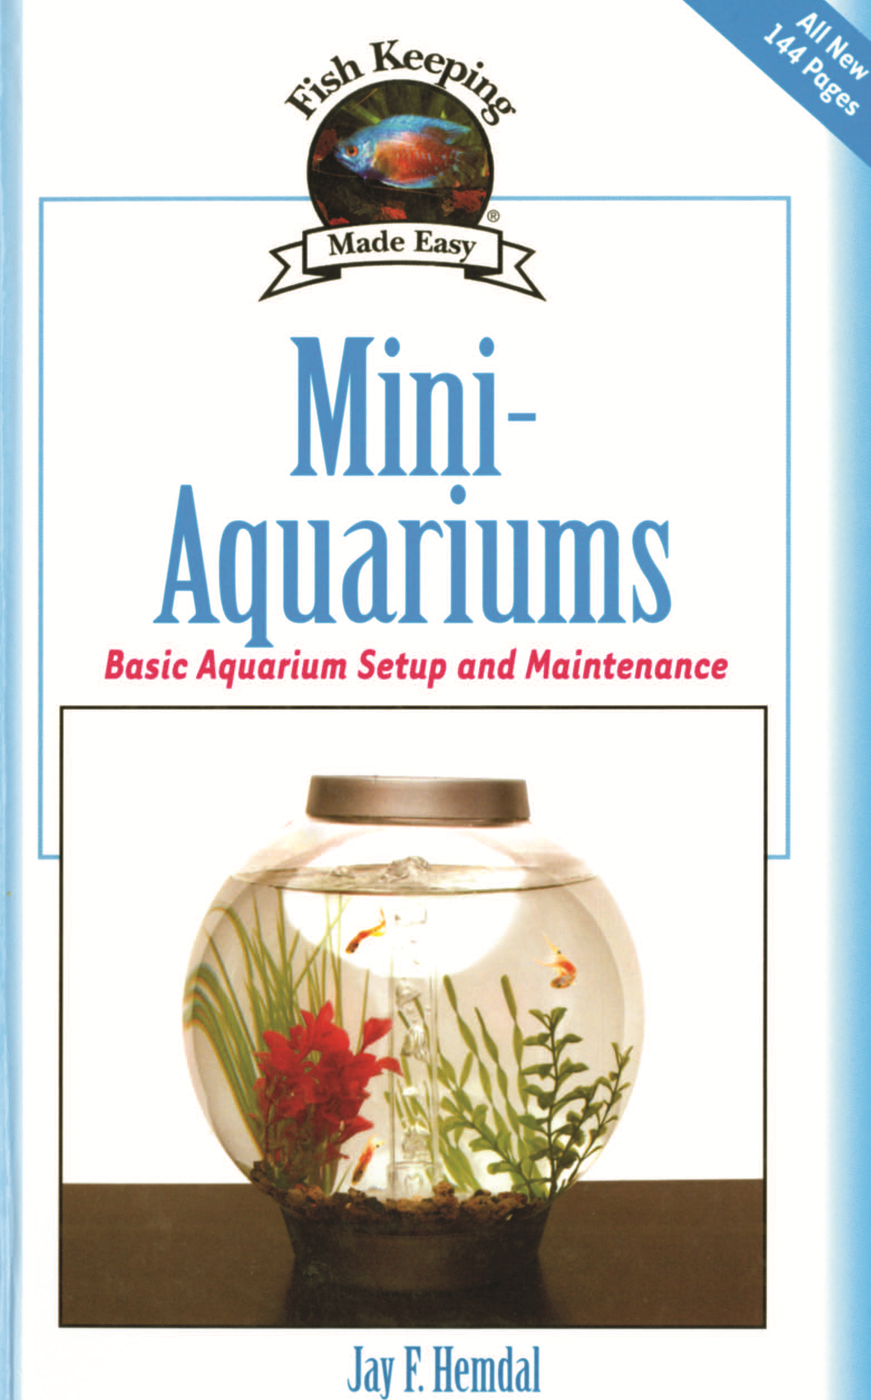 Mini-Aquariums